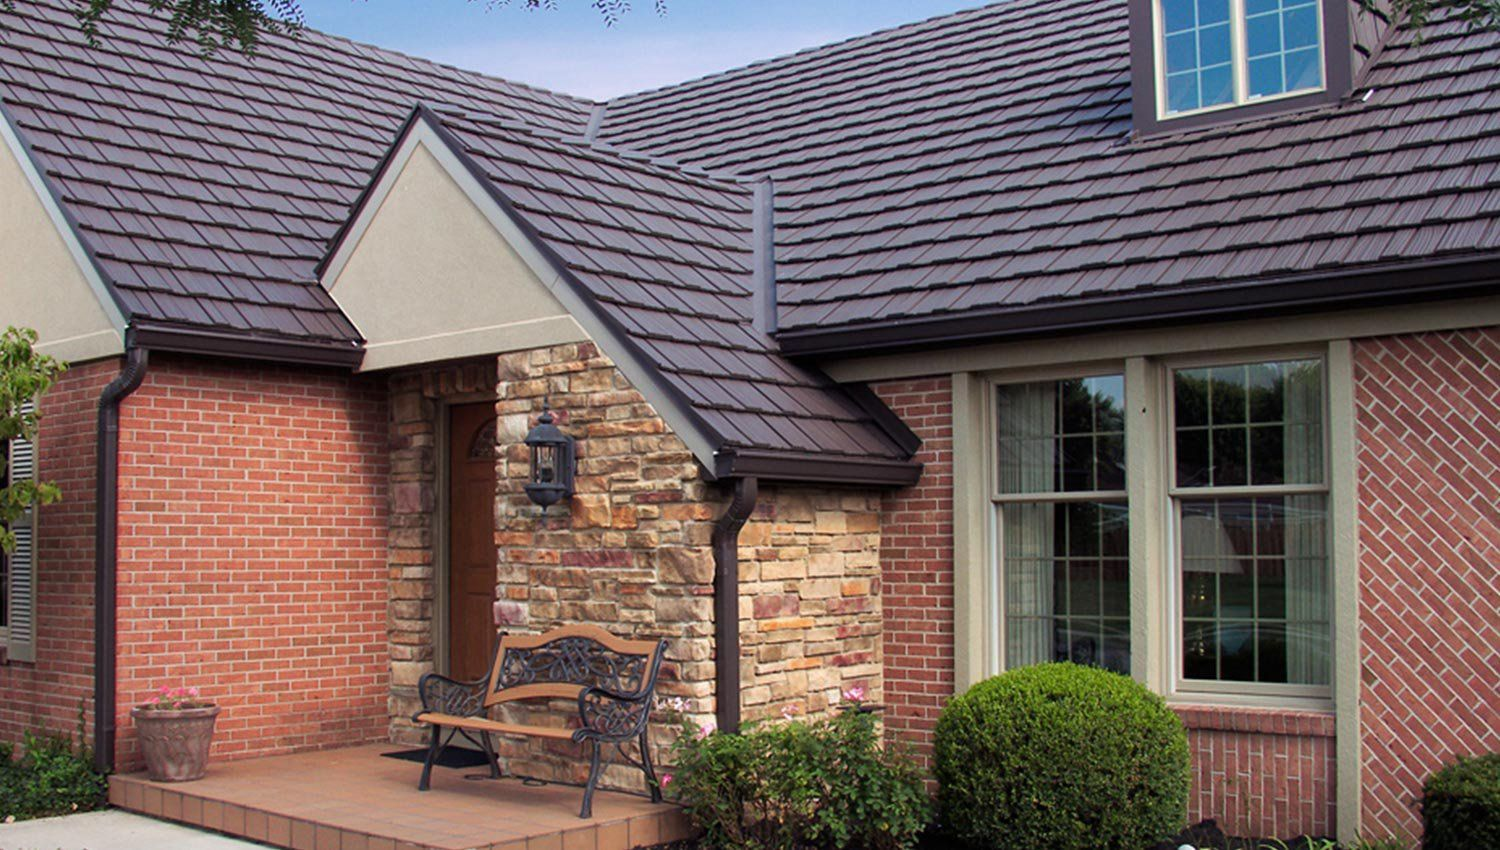 Residential Metal Roofing Consider Metal For Your New Roof Metal Roof Roofing Residential Metal Roofing